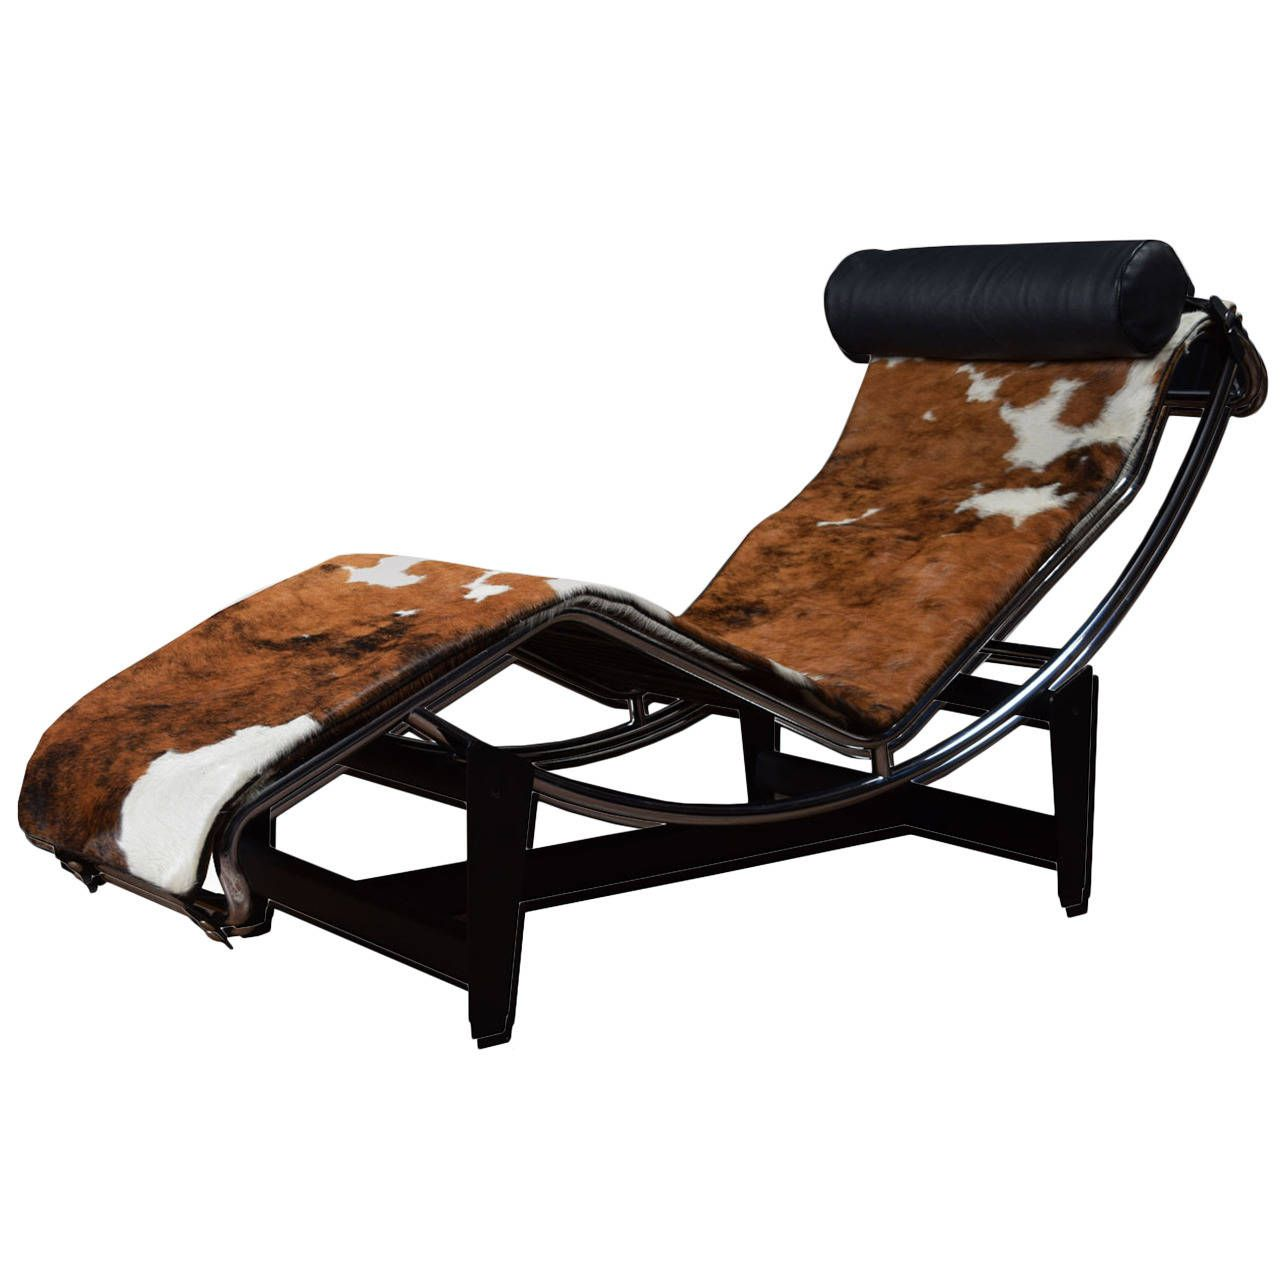 Le Corbusier LC4 Lounge Chair in Cowhide | Furniture_Chairs ... on le corbusier lamp, le corbusier bench, le corbusier loveseat, le corbusier table, le corbusier chair dimensions, le corbusier club chair, le corbusier furniture, le corbusier stool, le corbusier art, le corbusier armchair, le corbusier books, le corbusier ville radieuse, le corbusier modulor, le corbusier architecture, le corbusier desk, le corbusier recliner, le corbusier ville contemporaine, le corbusier lounge, le corbusier barcelona, le corbusier bed,